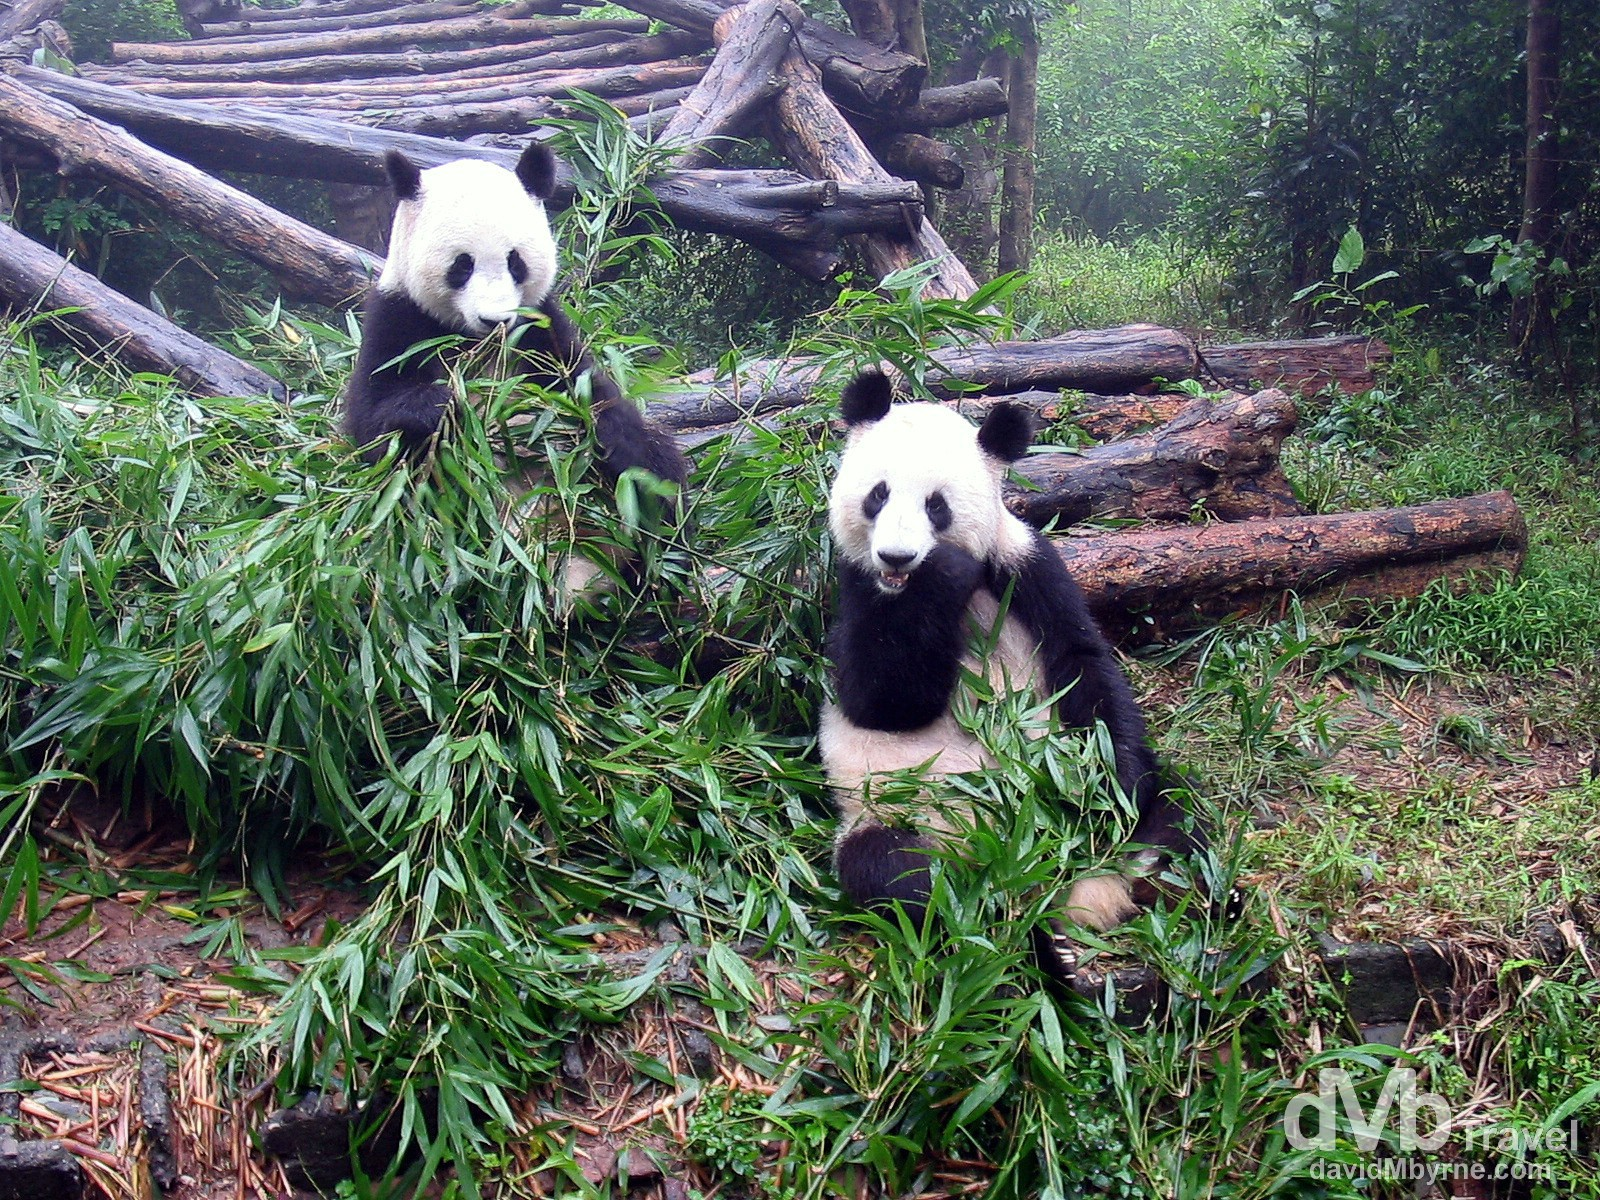 Pandas feeding at the Panda Breeding Centre in Chengdu, Sichuan Province, China. September 24th 2004.